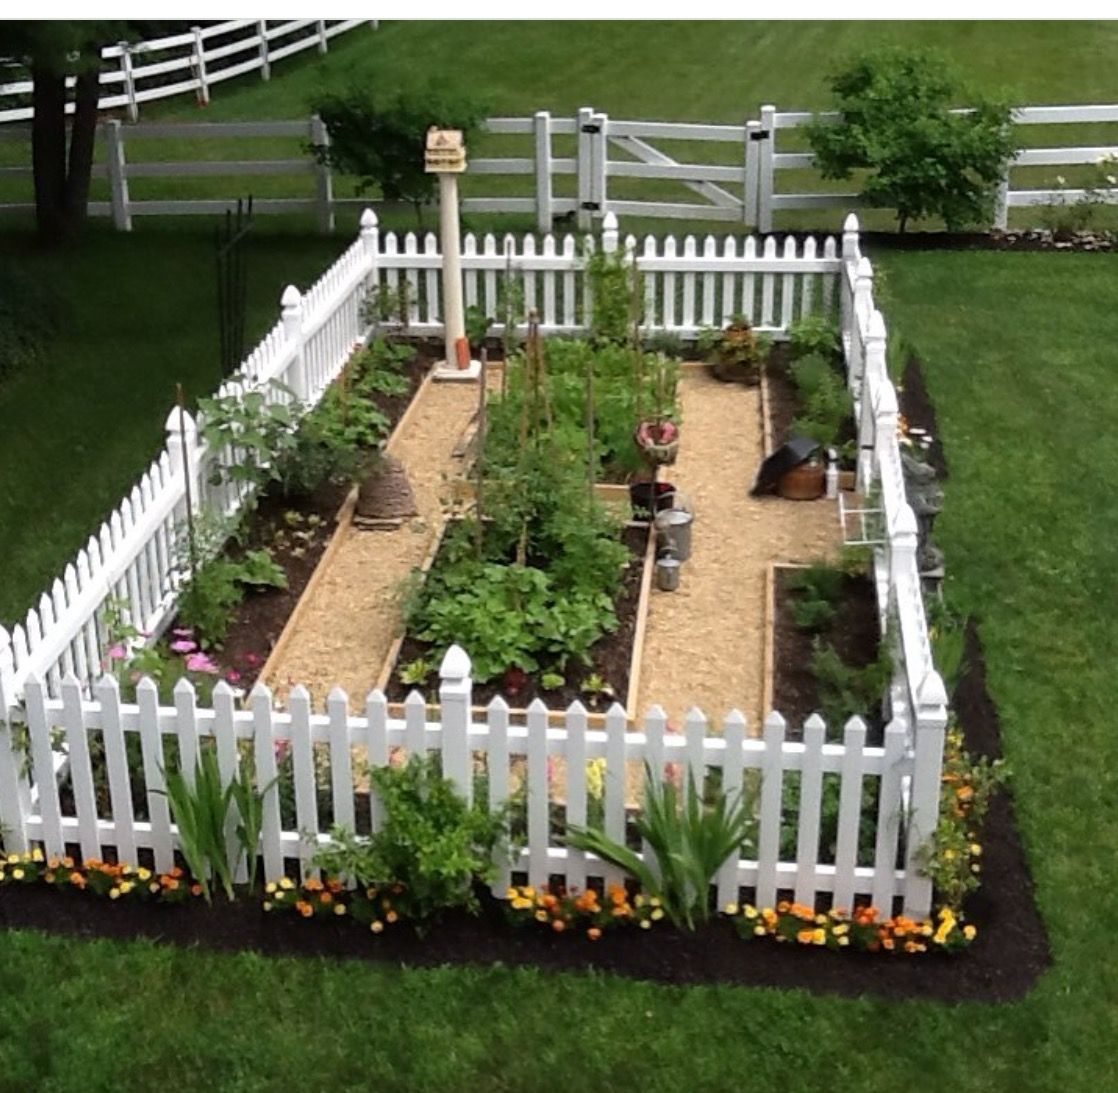 30 Amazing Ideas For Growing A Vegetable Garden In Your: Garden Layout Vegetable